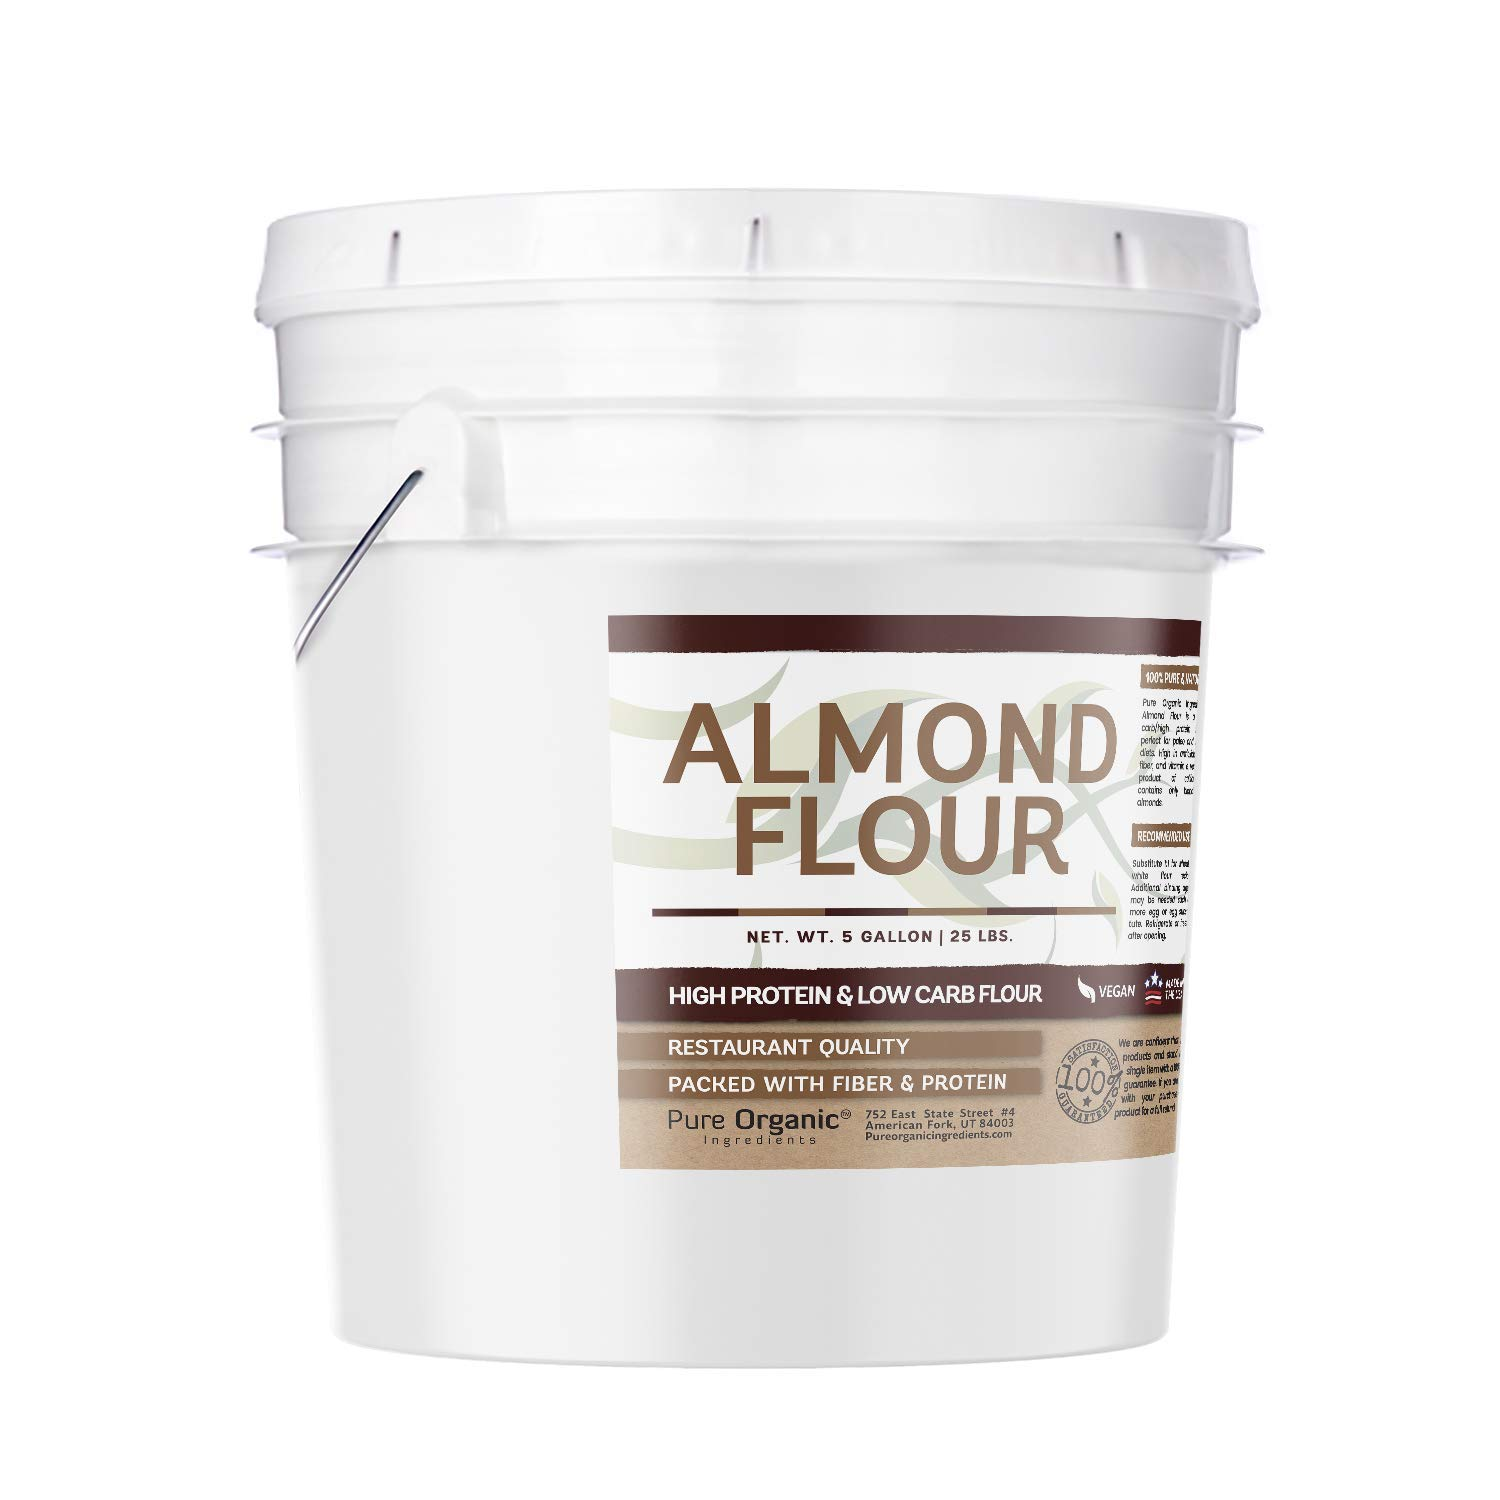 Almond Flour (5 Gallon Bucket, 25 lbs) by Pure Organic Ingredients, Gluten-Free, Blanched, Finely Ground, Vegan, Paleo & Keto Friendly, Strong Resealable Bucket (Also Available in 1 Gallon Bucket) by Pure Organic Ingredients (Image #2)